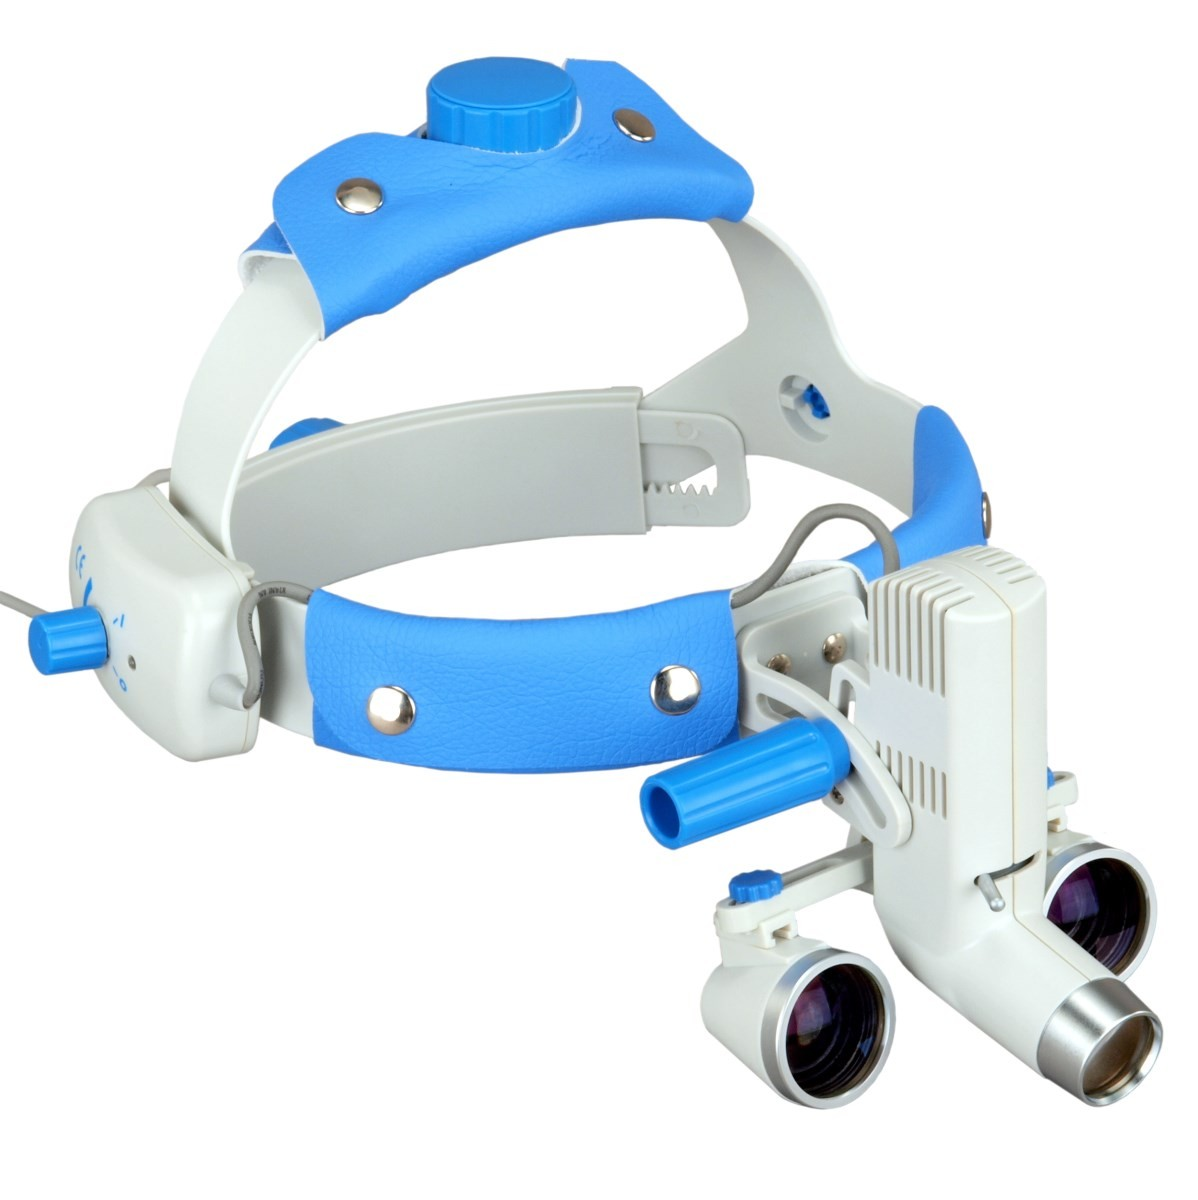 OMAX 2.5X/460mm(18 inches) Headband Binocular Loupes with 5W LED Headlight